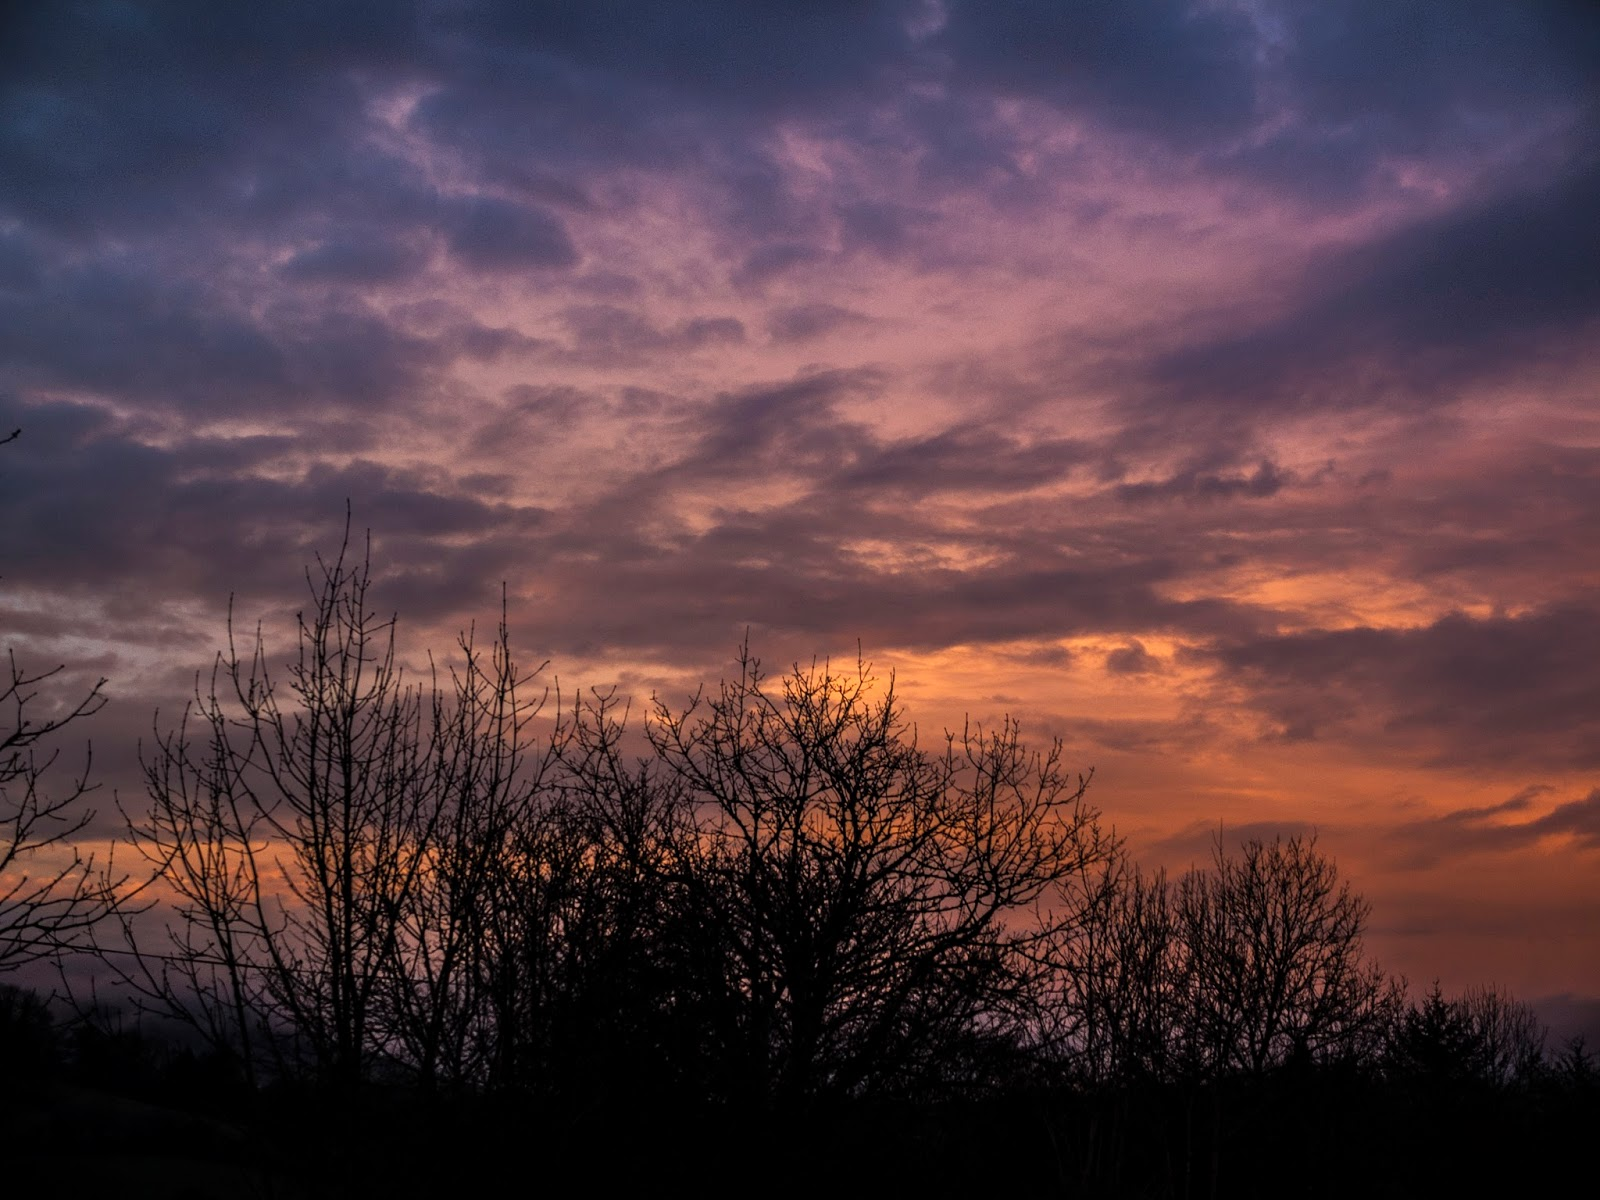 Colourful sunset clouds and silhouettes of tree branches.